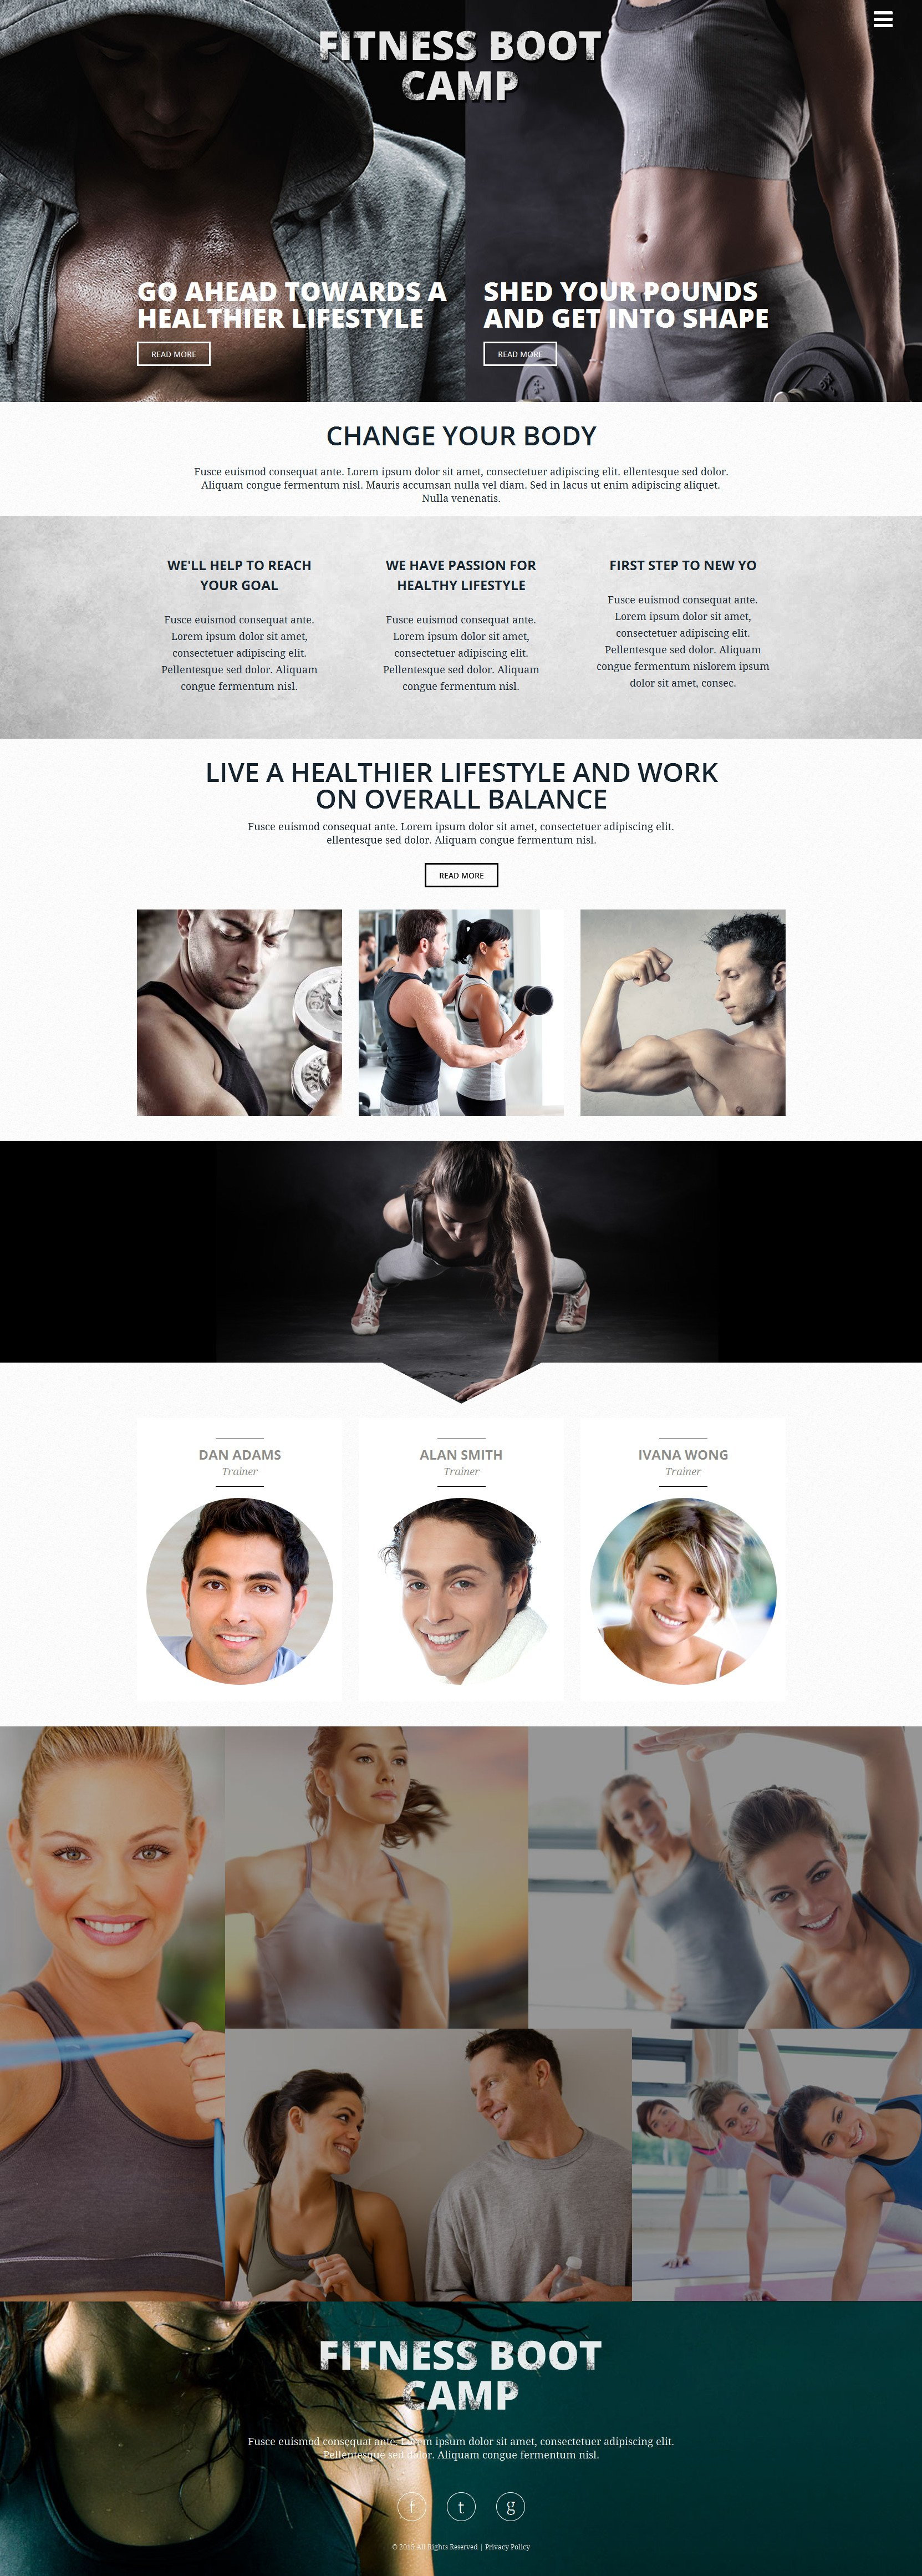 The Fitness Store Responsive Javascript Animated Design 53542, one of the best website templates of its kind (sport, most popular), also known as fitness store website template, athletic website template, equipment website template, training website template, clothes website template, extreme website template, fishing website template, pool website template, darts website template, weight website template, boxing website template, cycling website template, golf website template, water website template, swimming website template, vitamins website template, collection website template, product website template, arrivals website template, collection website template, fishing website template, golf website template, darts website template, reviews website template, products website template, manufactures website template, winter website template, summer website template, difficult website template, pleasant and related with fitness store, athletic, equipment, training, clothes, extreme, fishing, pool, darts, weight, boxing, cycling, golf, water, swimming, vitamins, collection, product, arrivals, collection, fishing, golf, darts, reviews, products, manufactures, winter, summer, difficult, pleasant, etc.